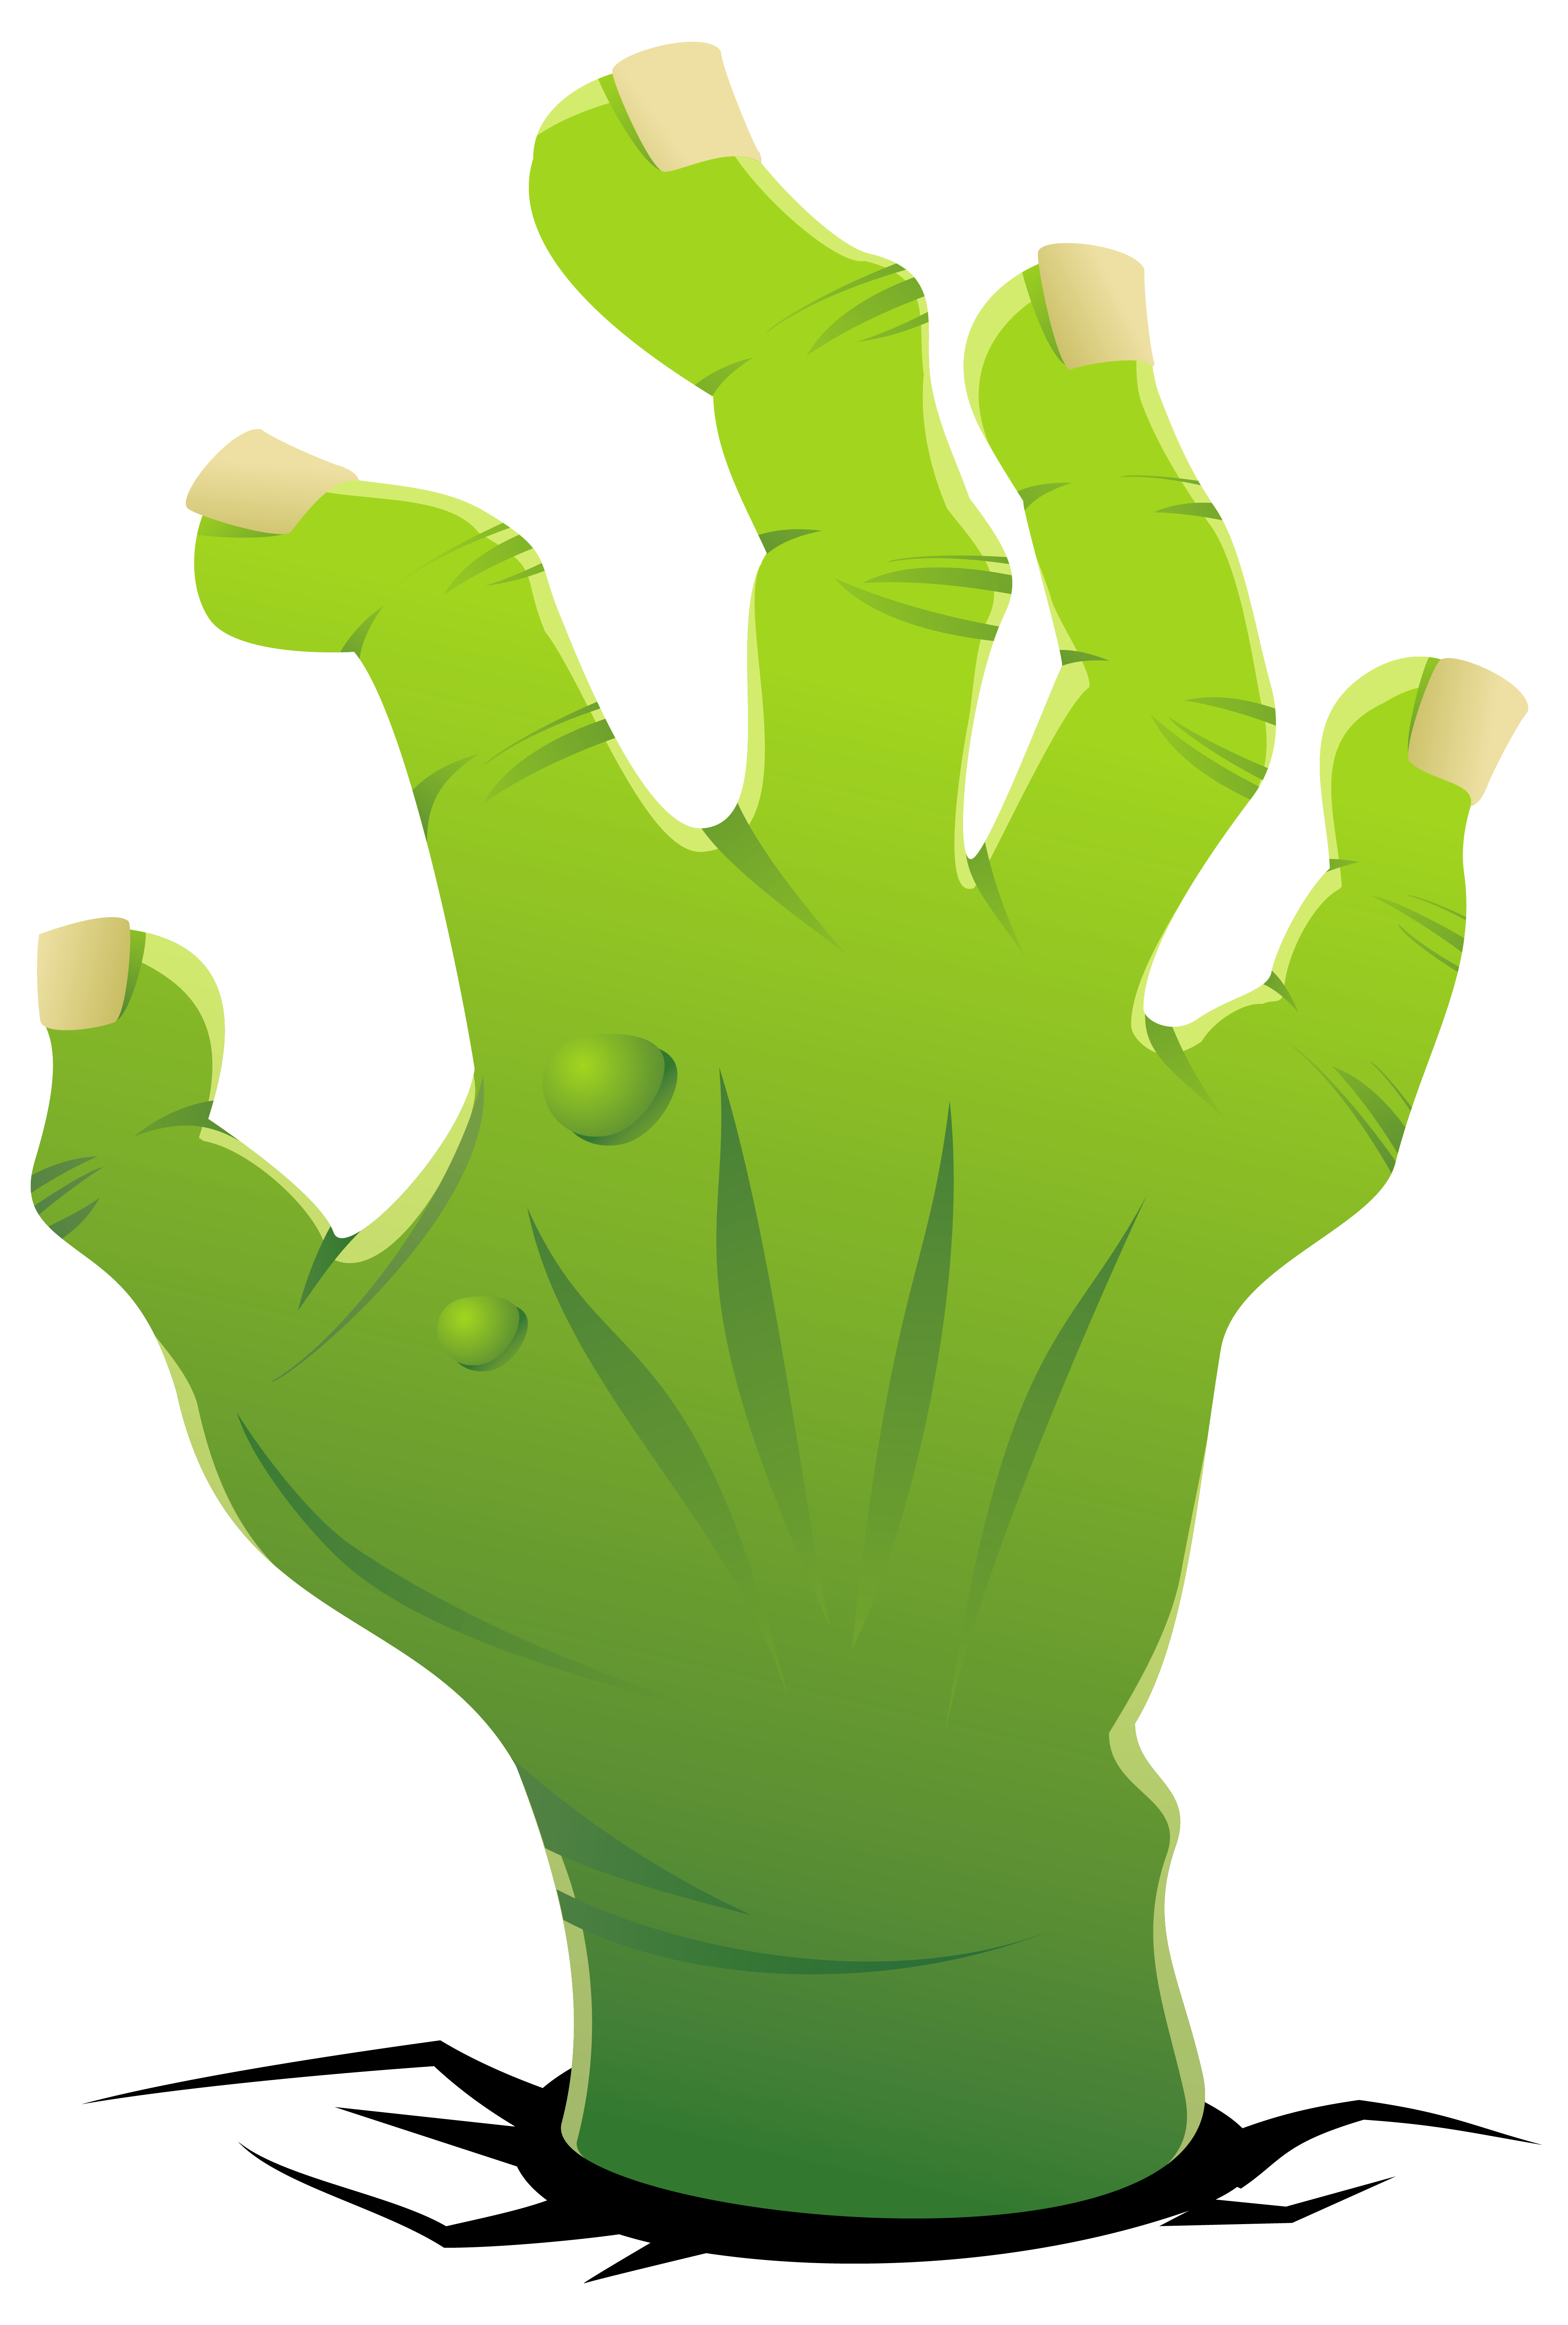 3979x5899 Zombie Hand Clipart Image